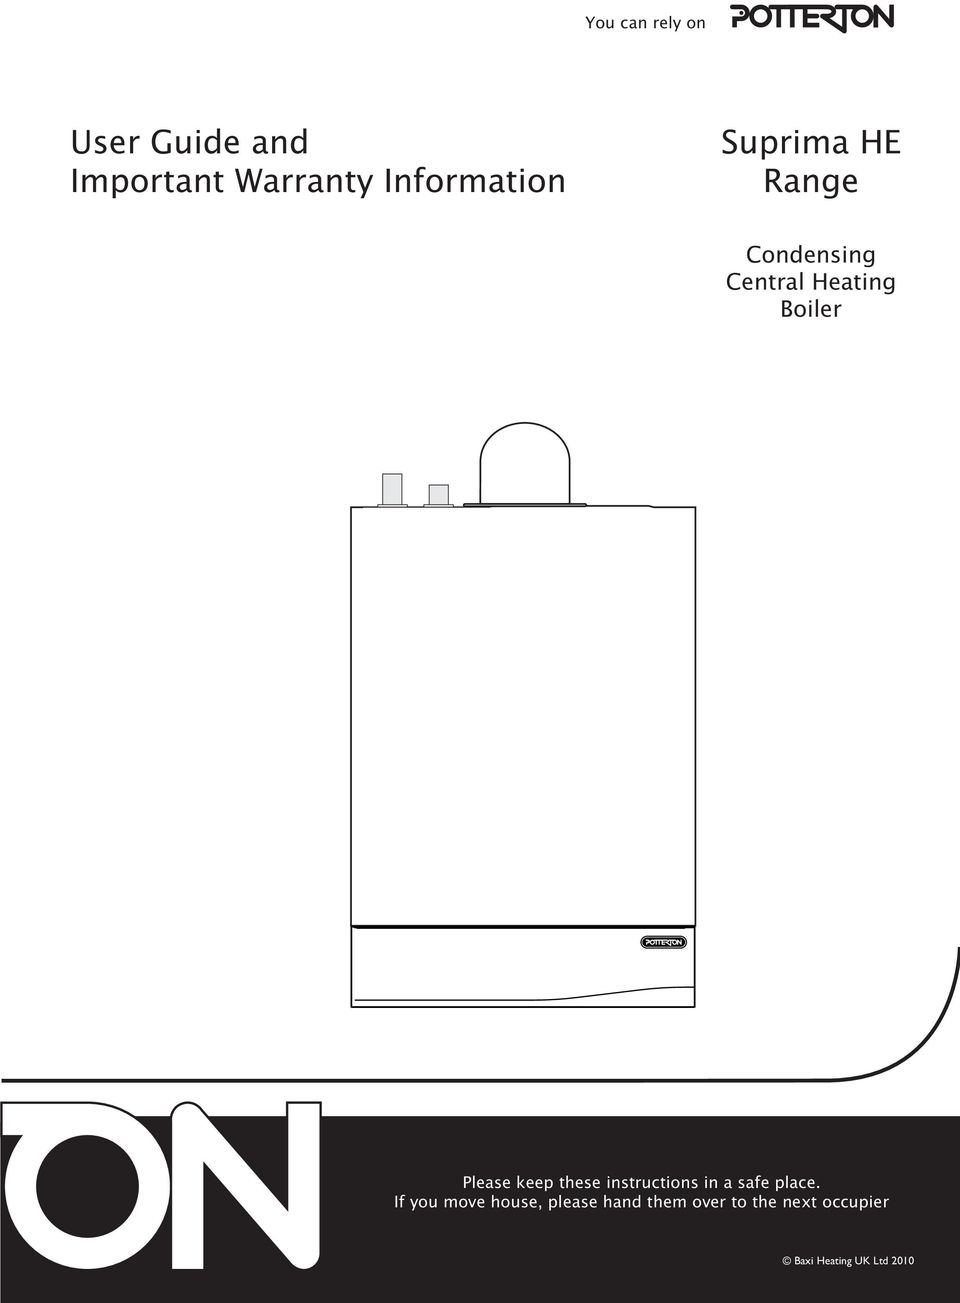 User Guide and Important Warranty Information. Suprima HE Range ...